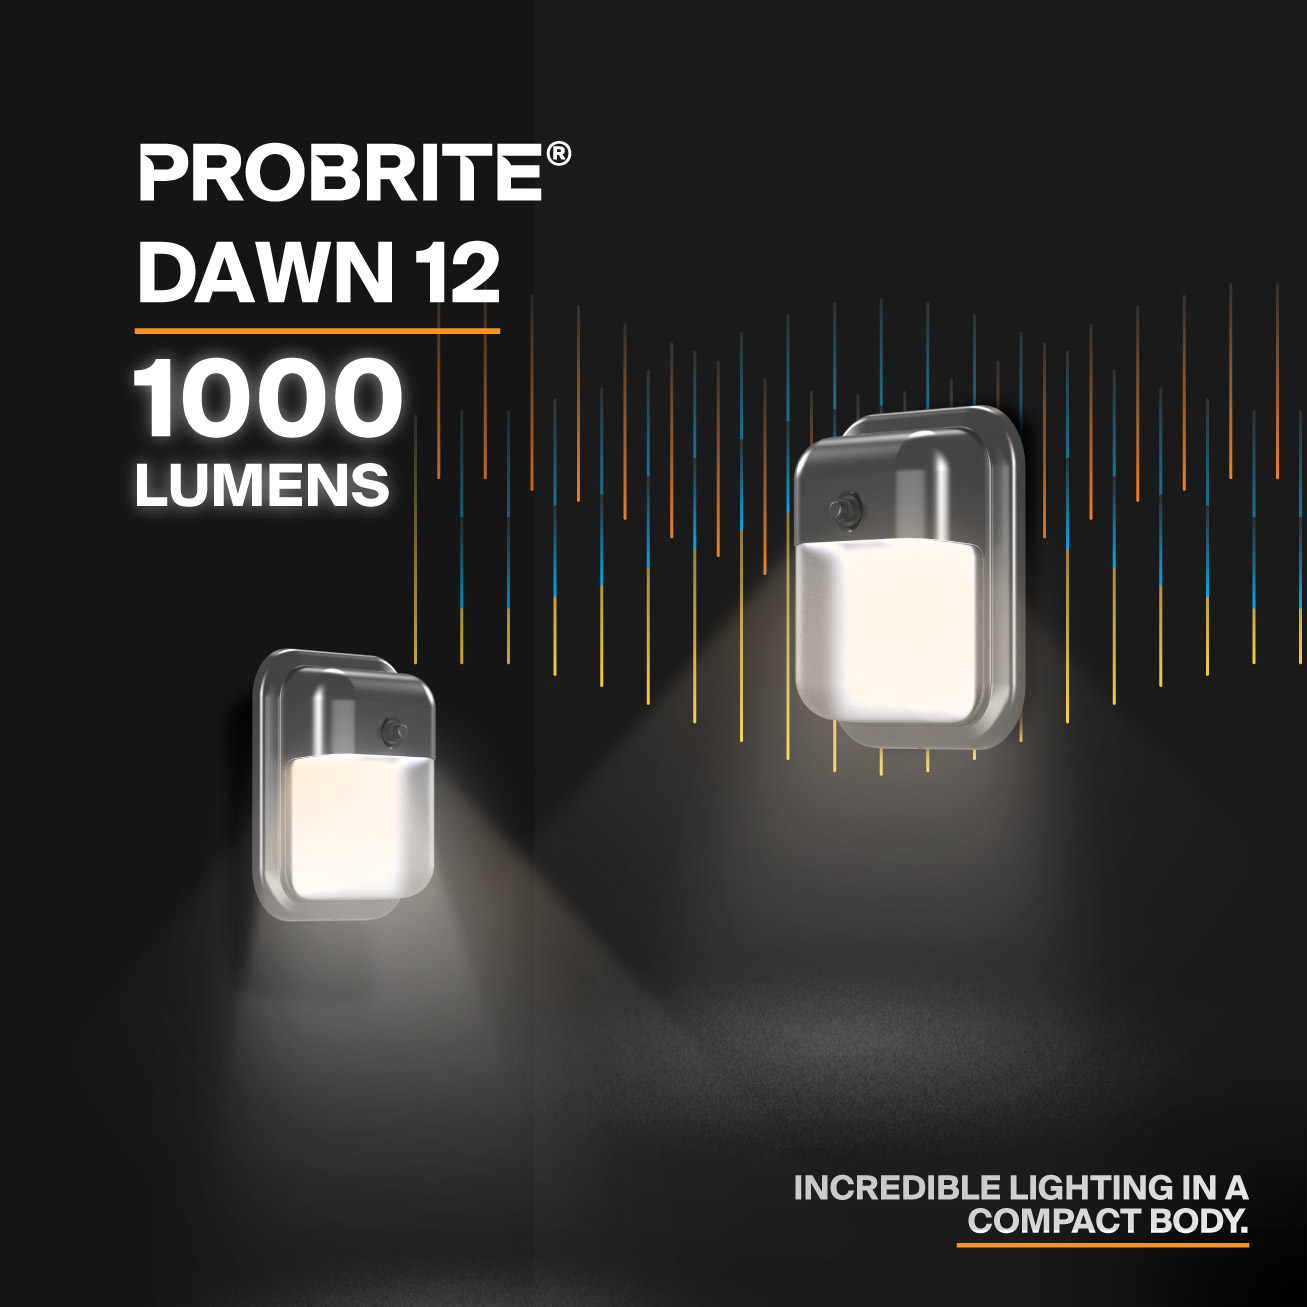 Probrite Dawn12 LED Wall Pack Incredible Lighting